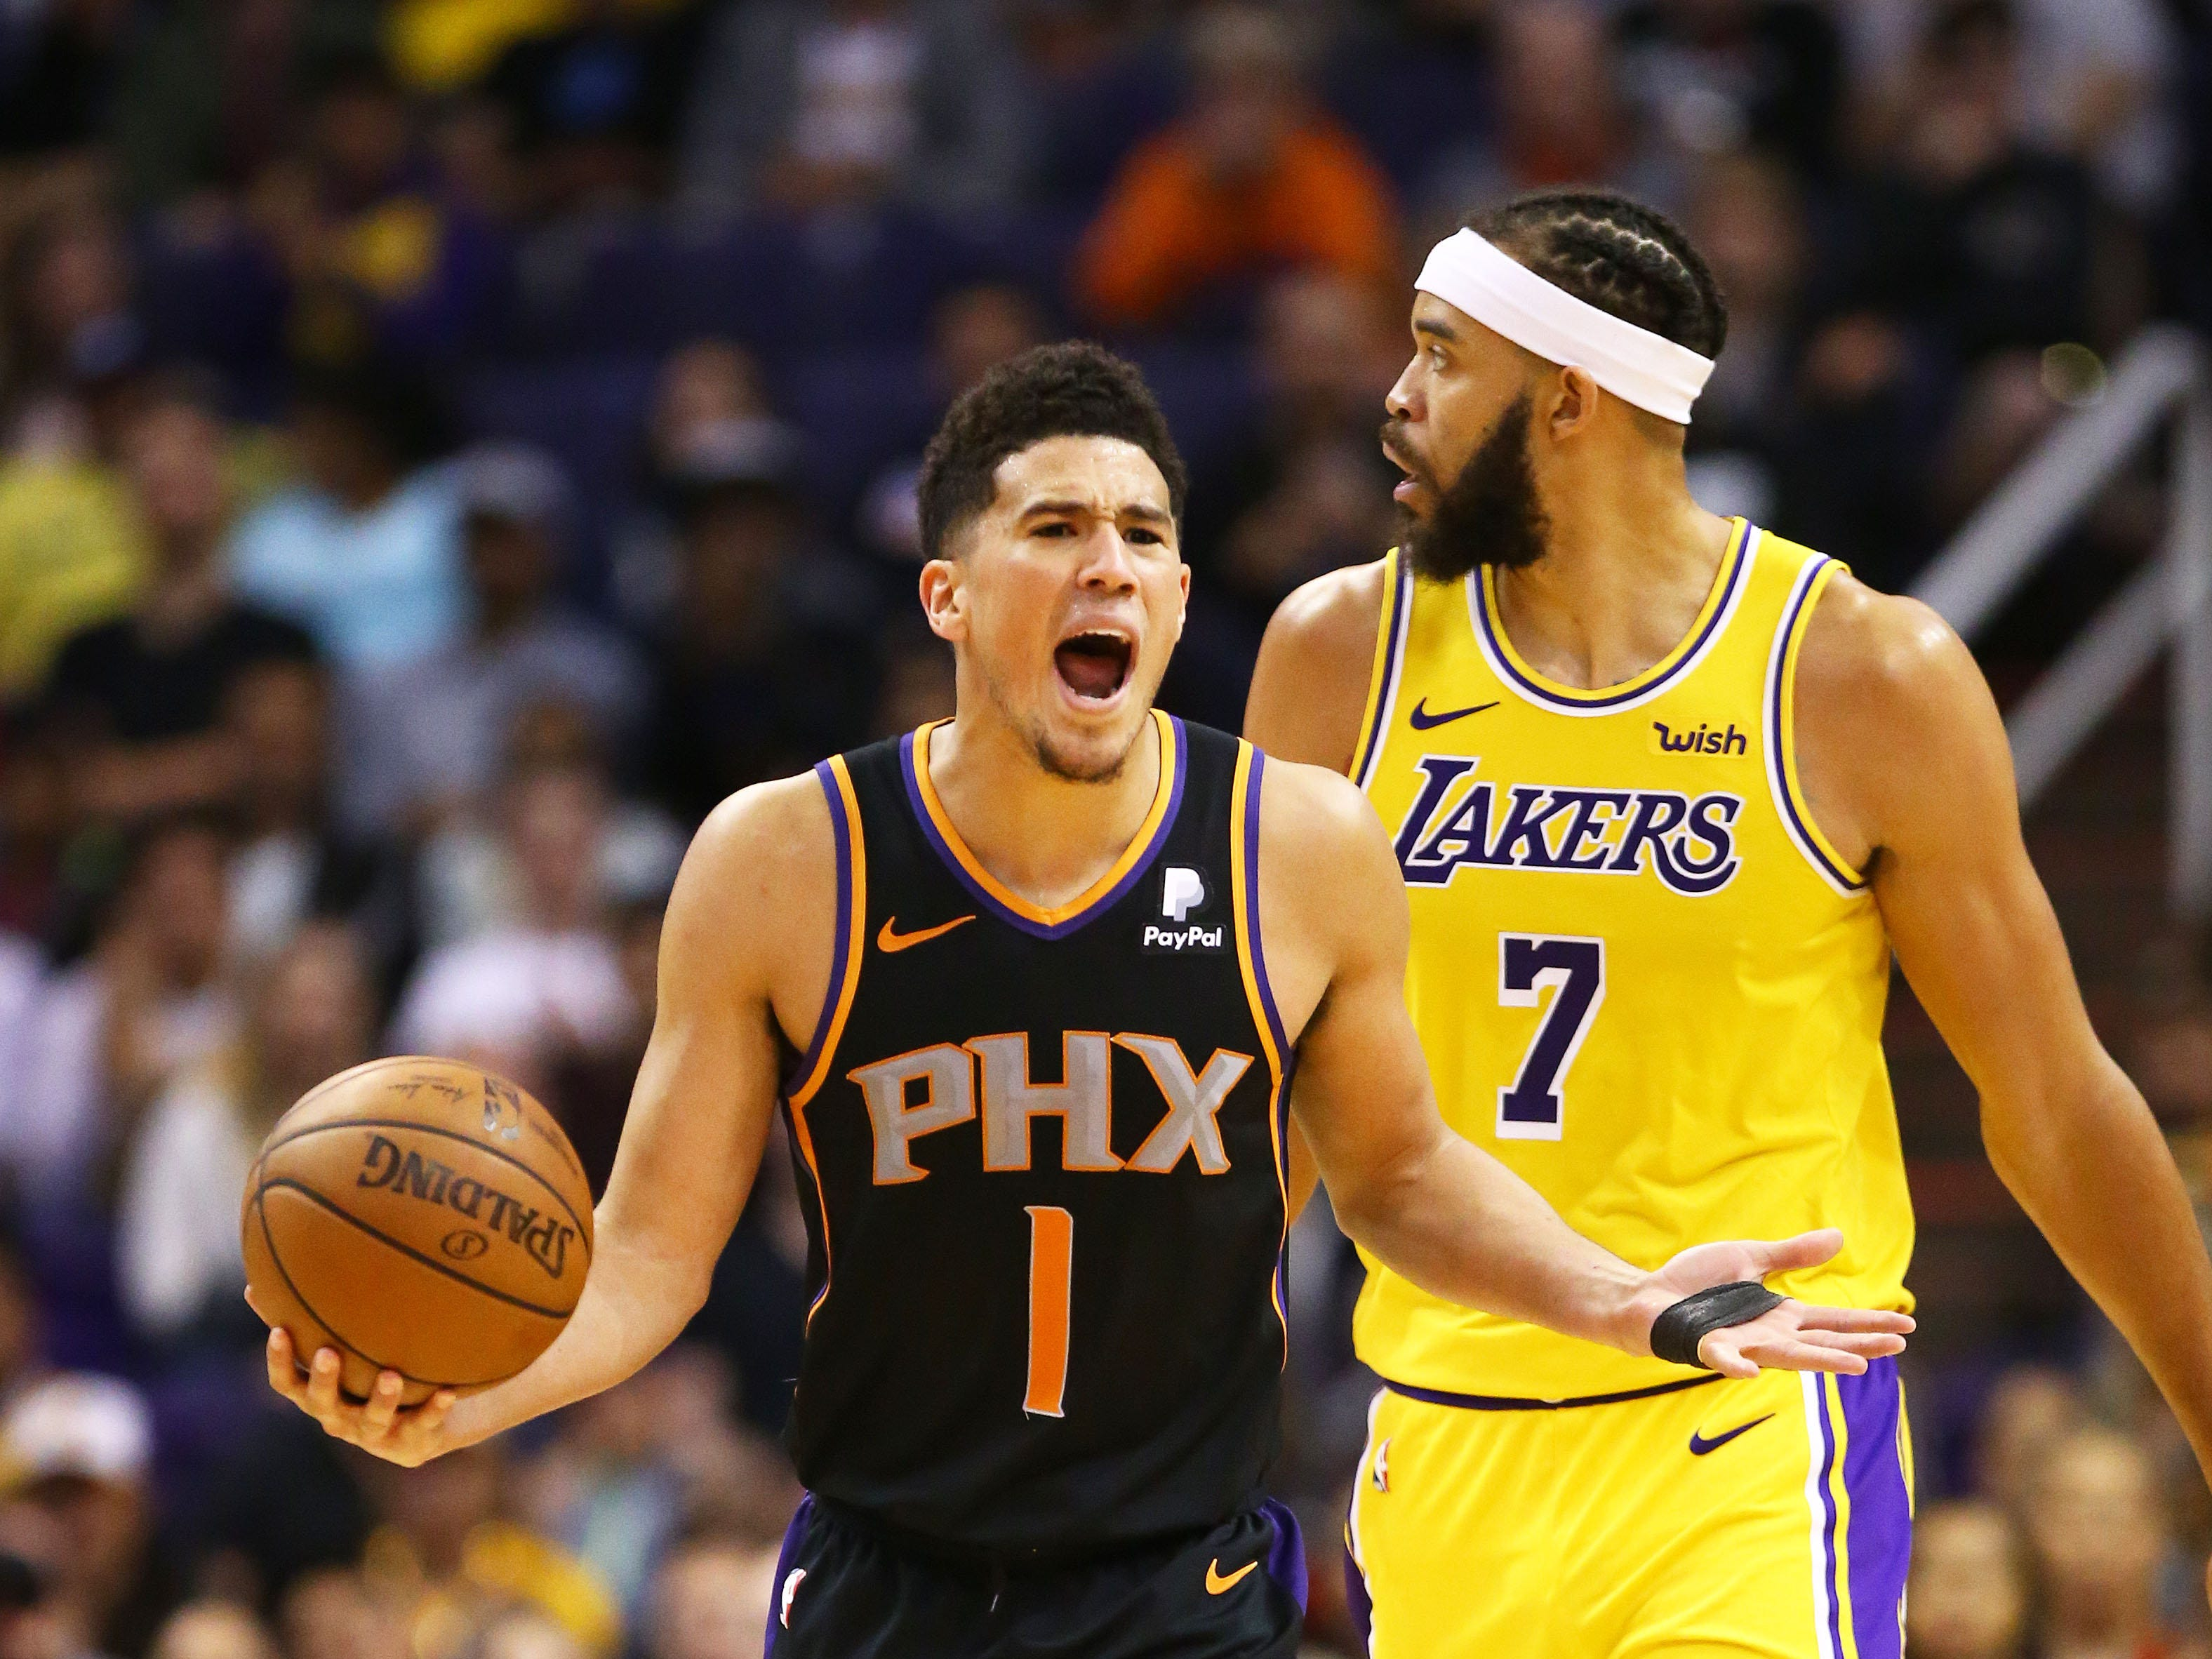 Phoenix Suns guard Devin Booker (1) reacts after being called for traveling against the Los Angeles Lakers in the second half on Mar. 2, 2019, at Talking Stick Resort Arena in Phoenix, Ariz.